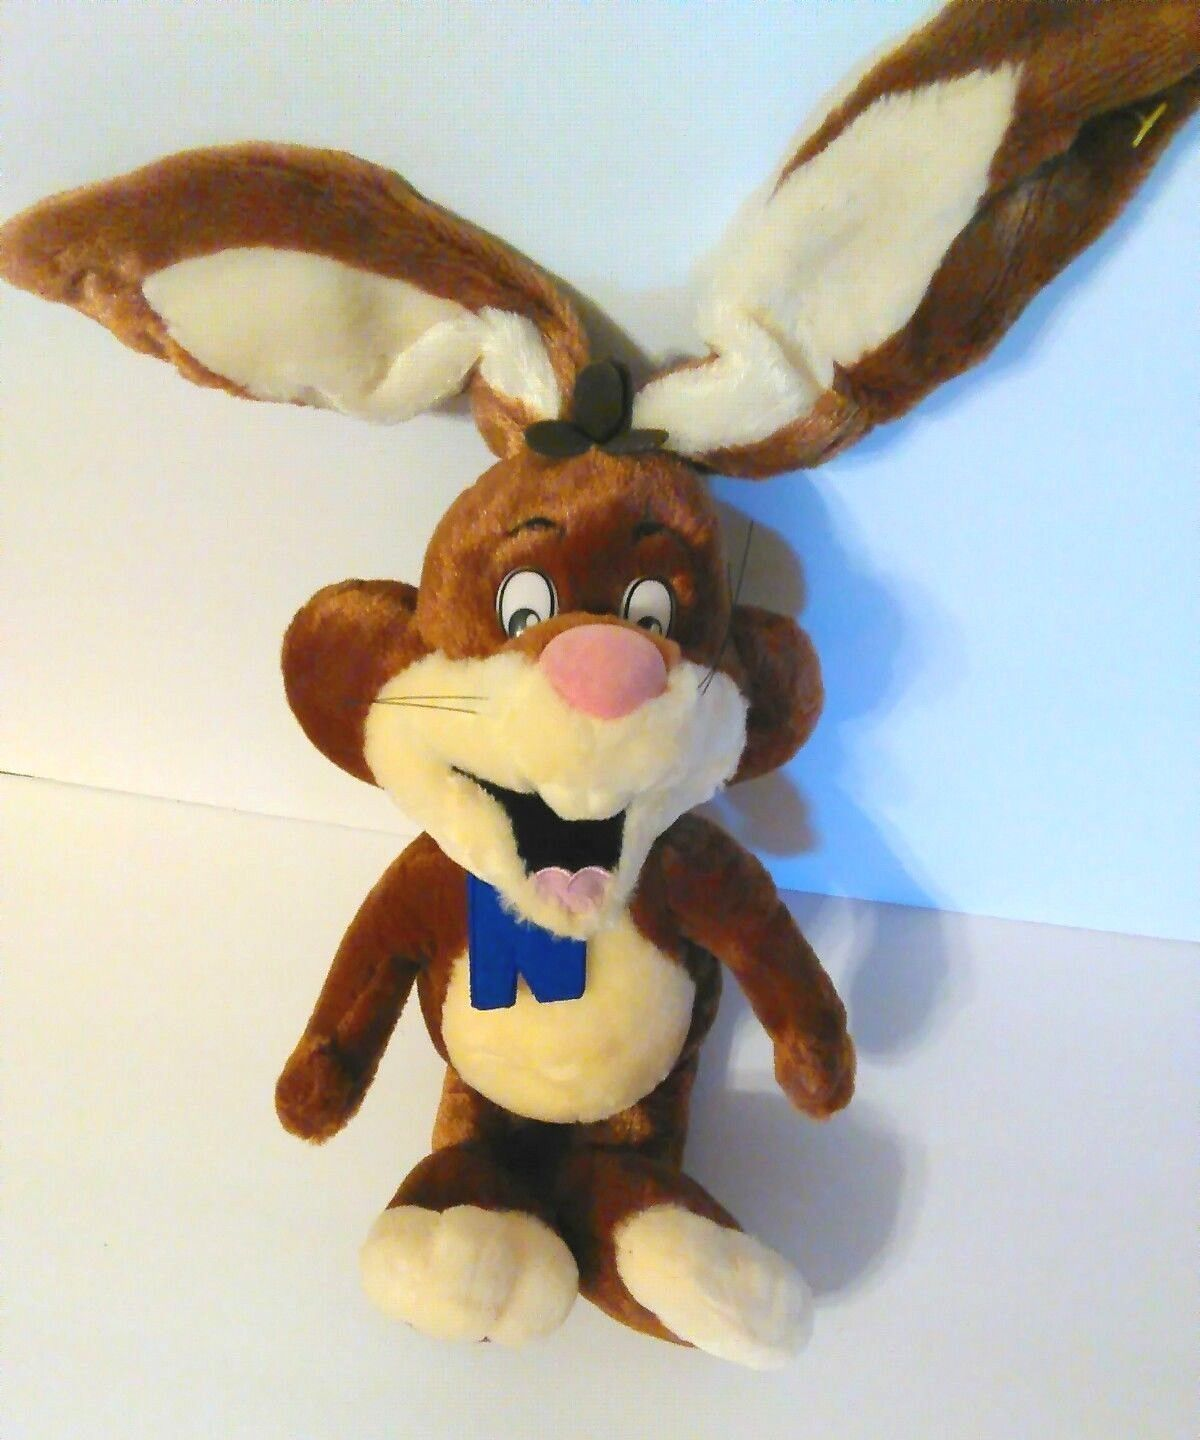 Primary image for Bunny Rabbit Nestle Chocolate Quik Plush Stuffed Animal TV Commericals